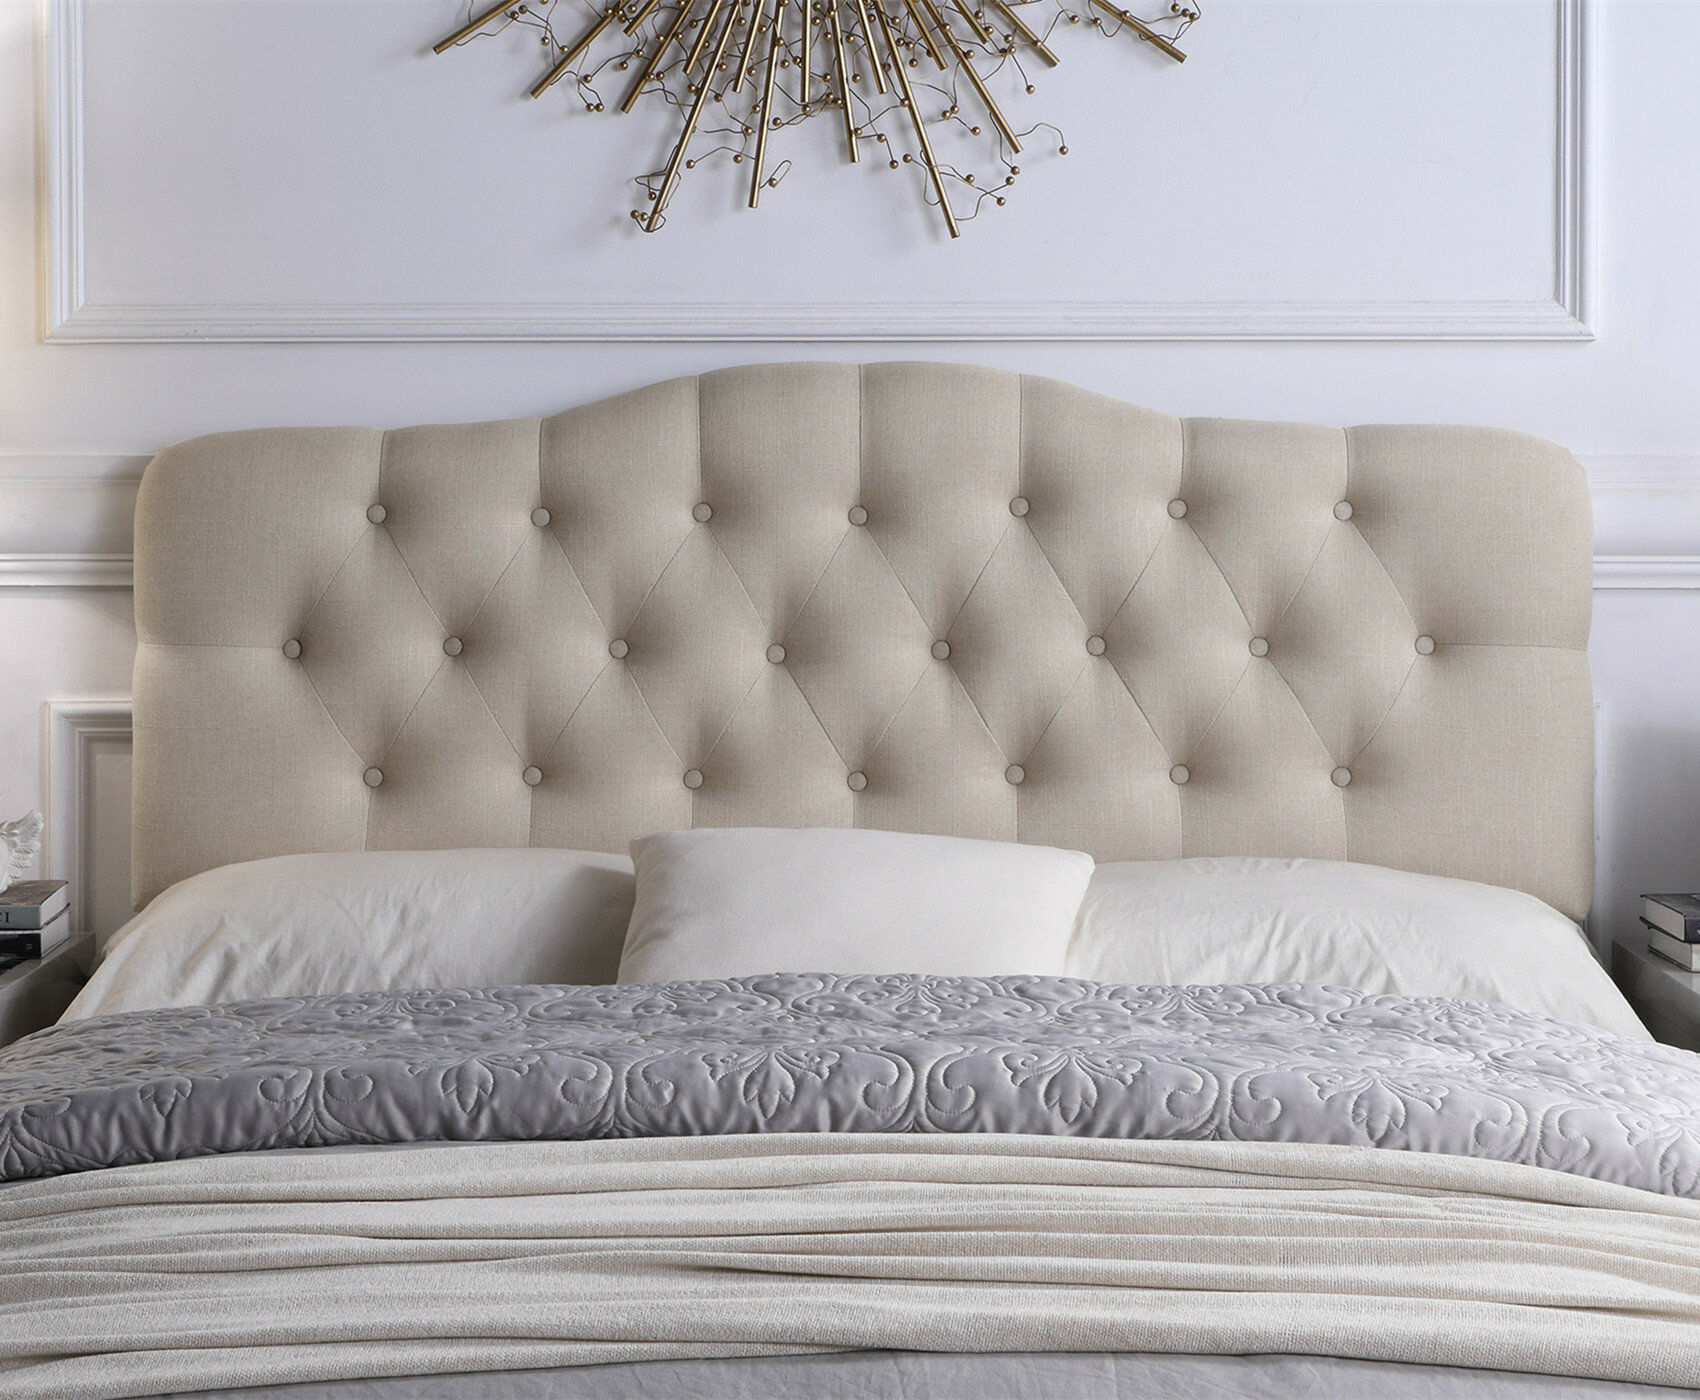 headboard joss wayfair and headboards panel furniture charlton pdx charlottesville main reviews home upholstered